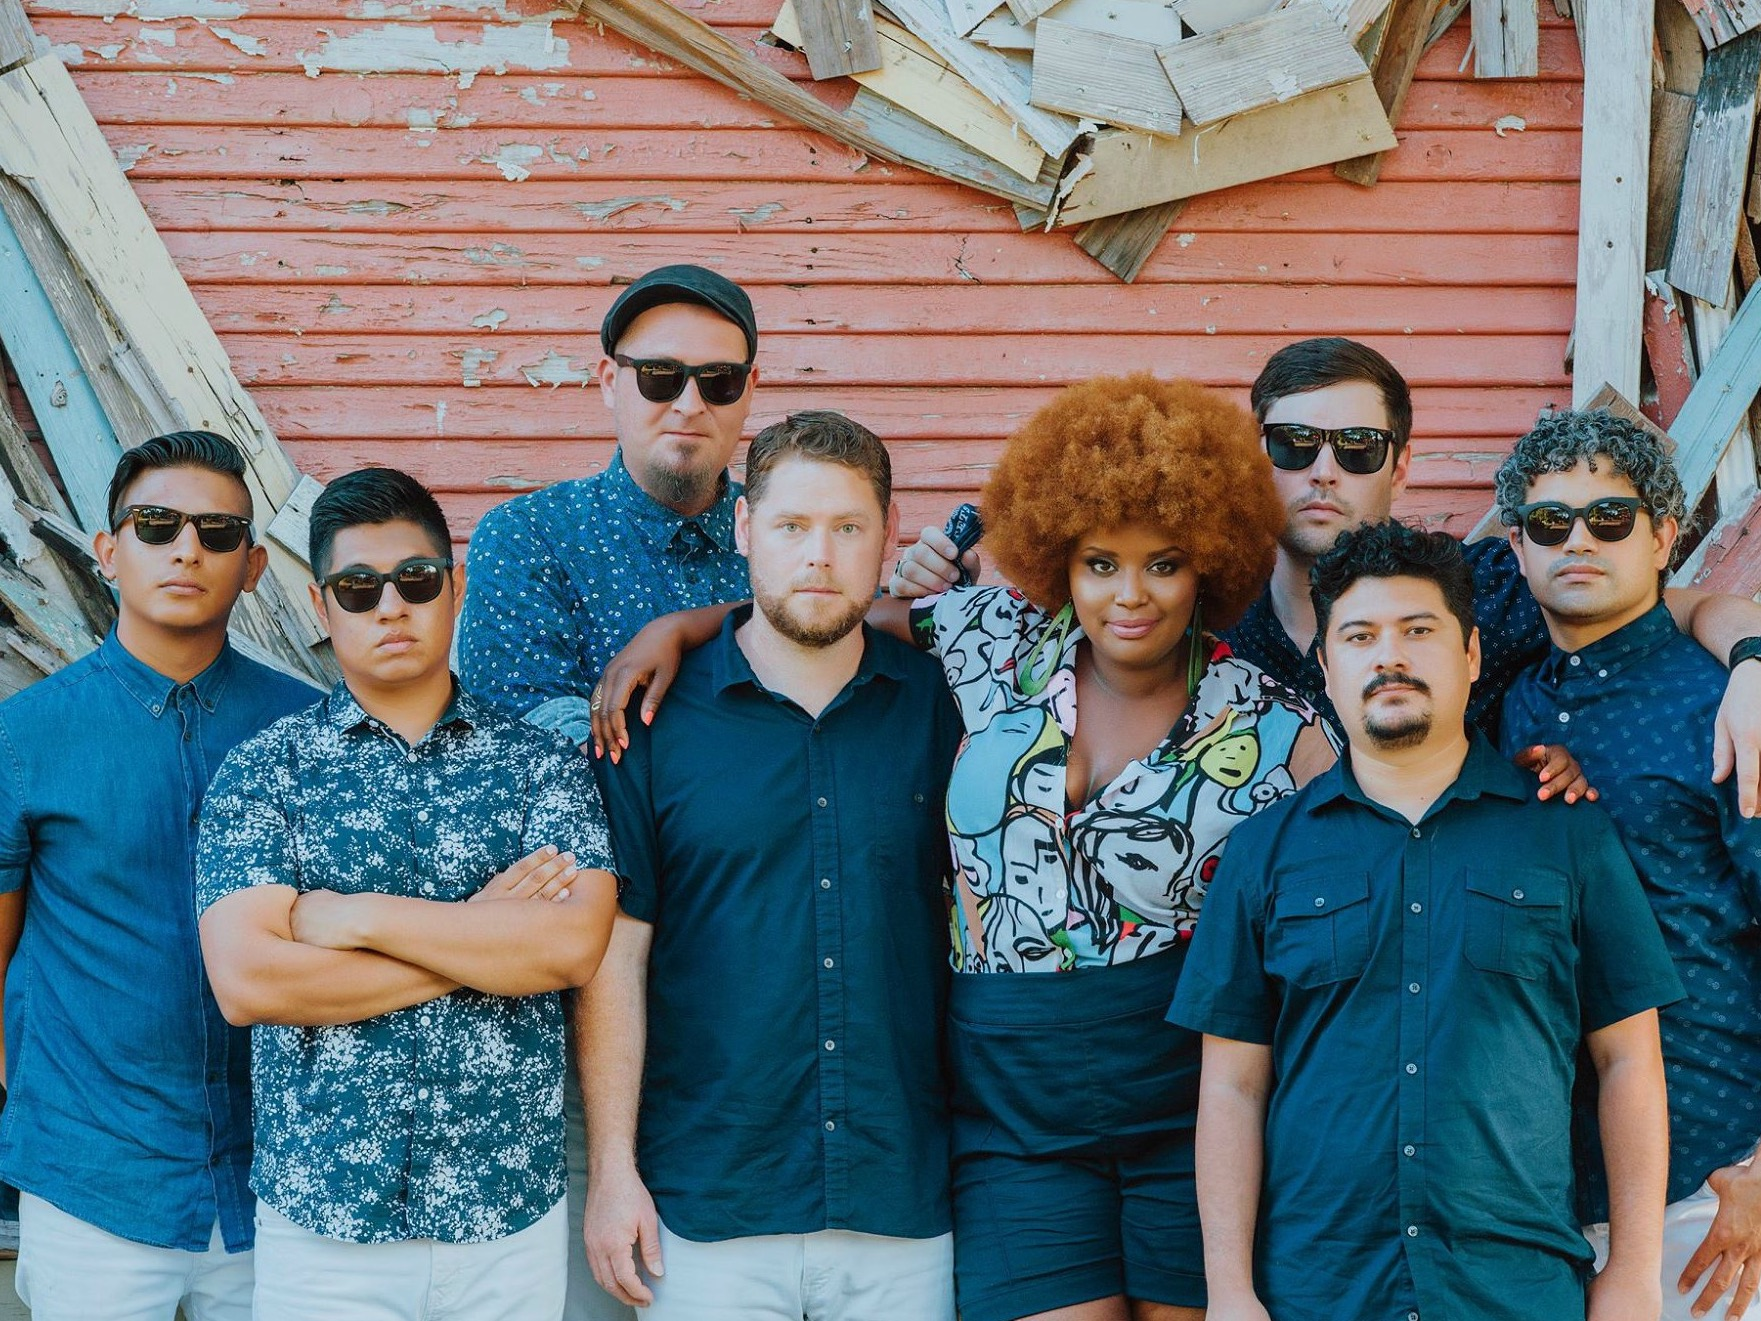 SONG OF THE DAY: 'I Think I Love You' by The Suffers